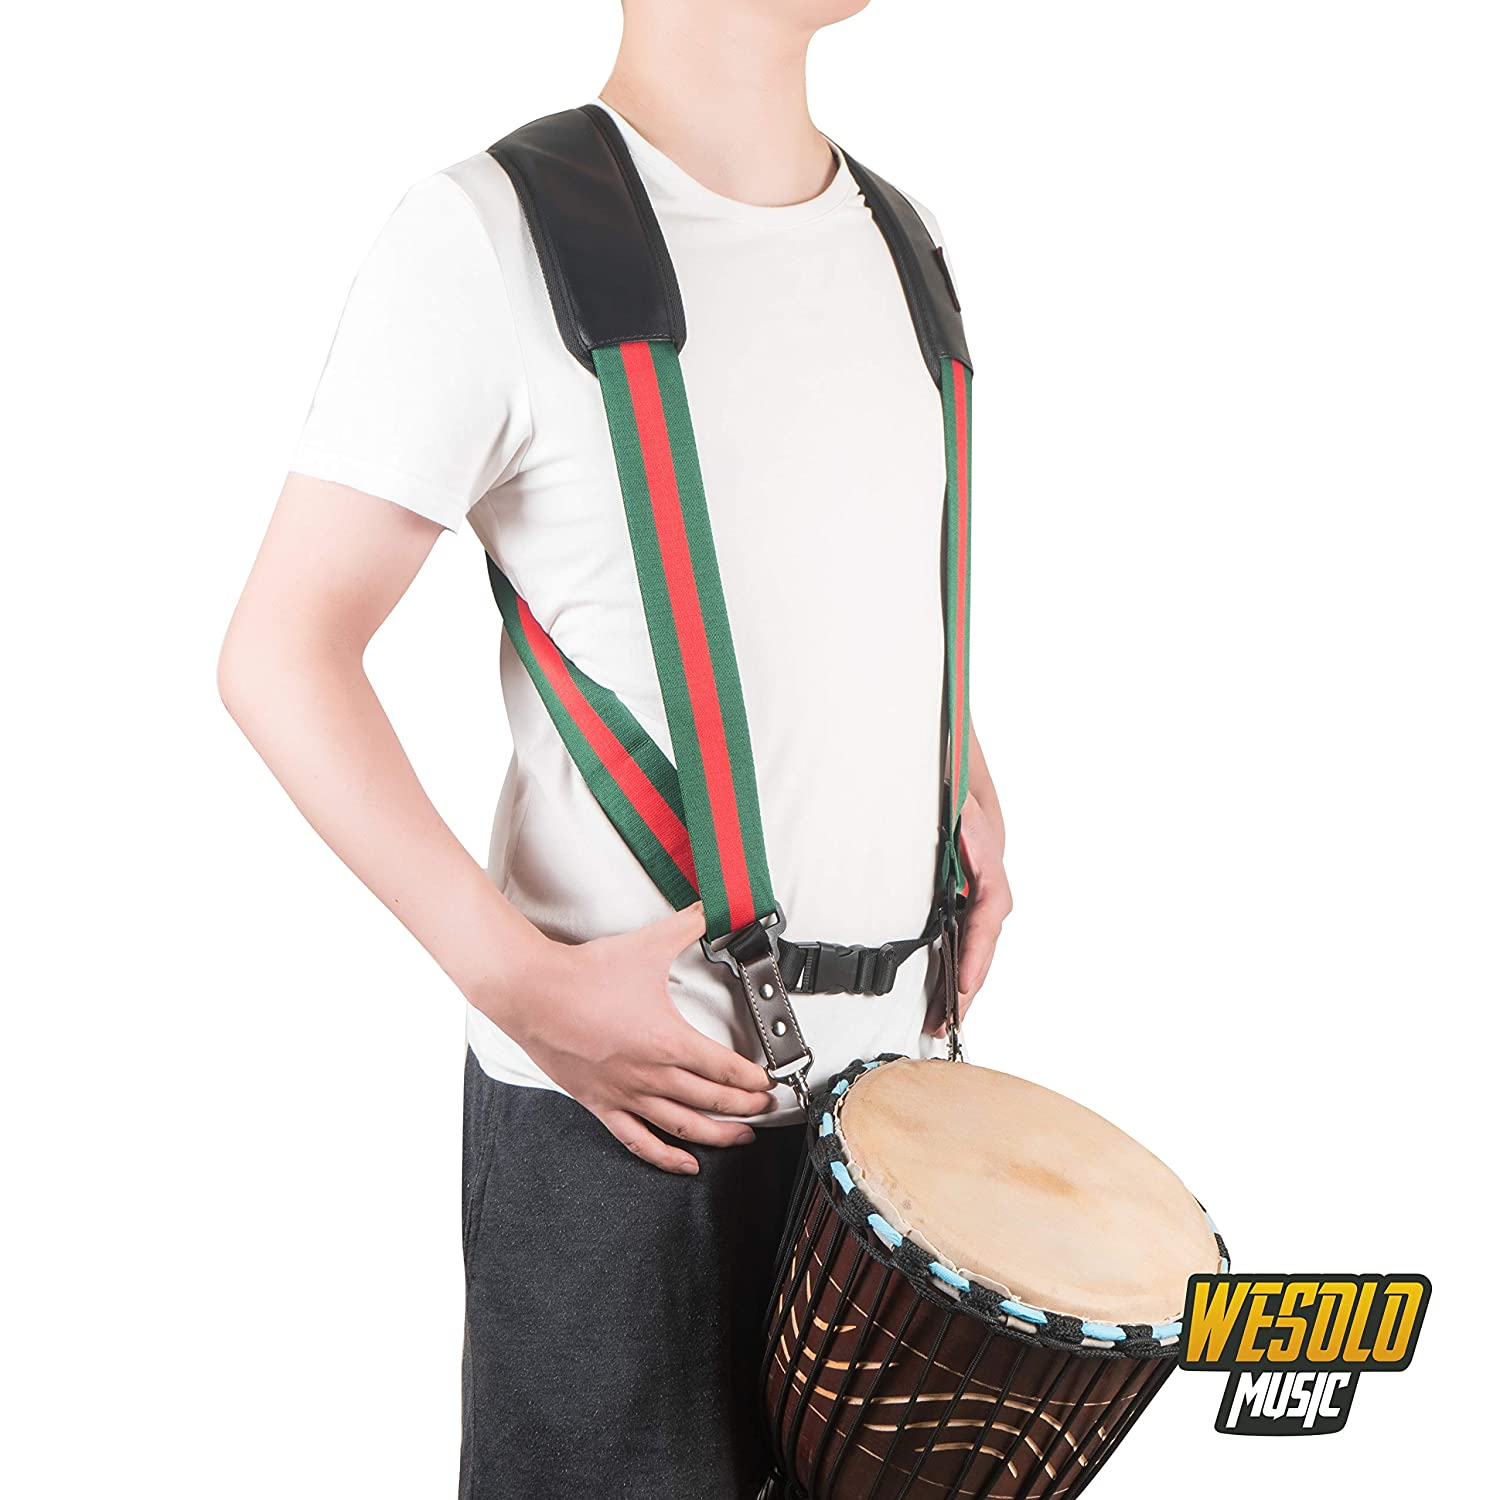 WESOLO Hand Drum Shoulder Strap Djembe Harness Percussion Instrument Belt,Green/&red